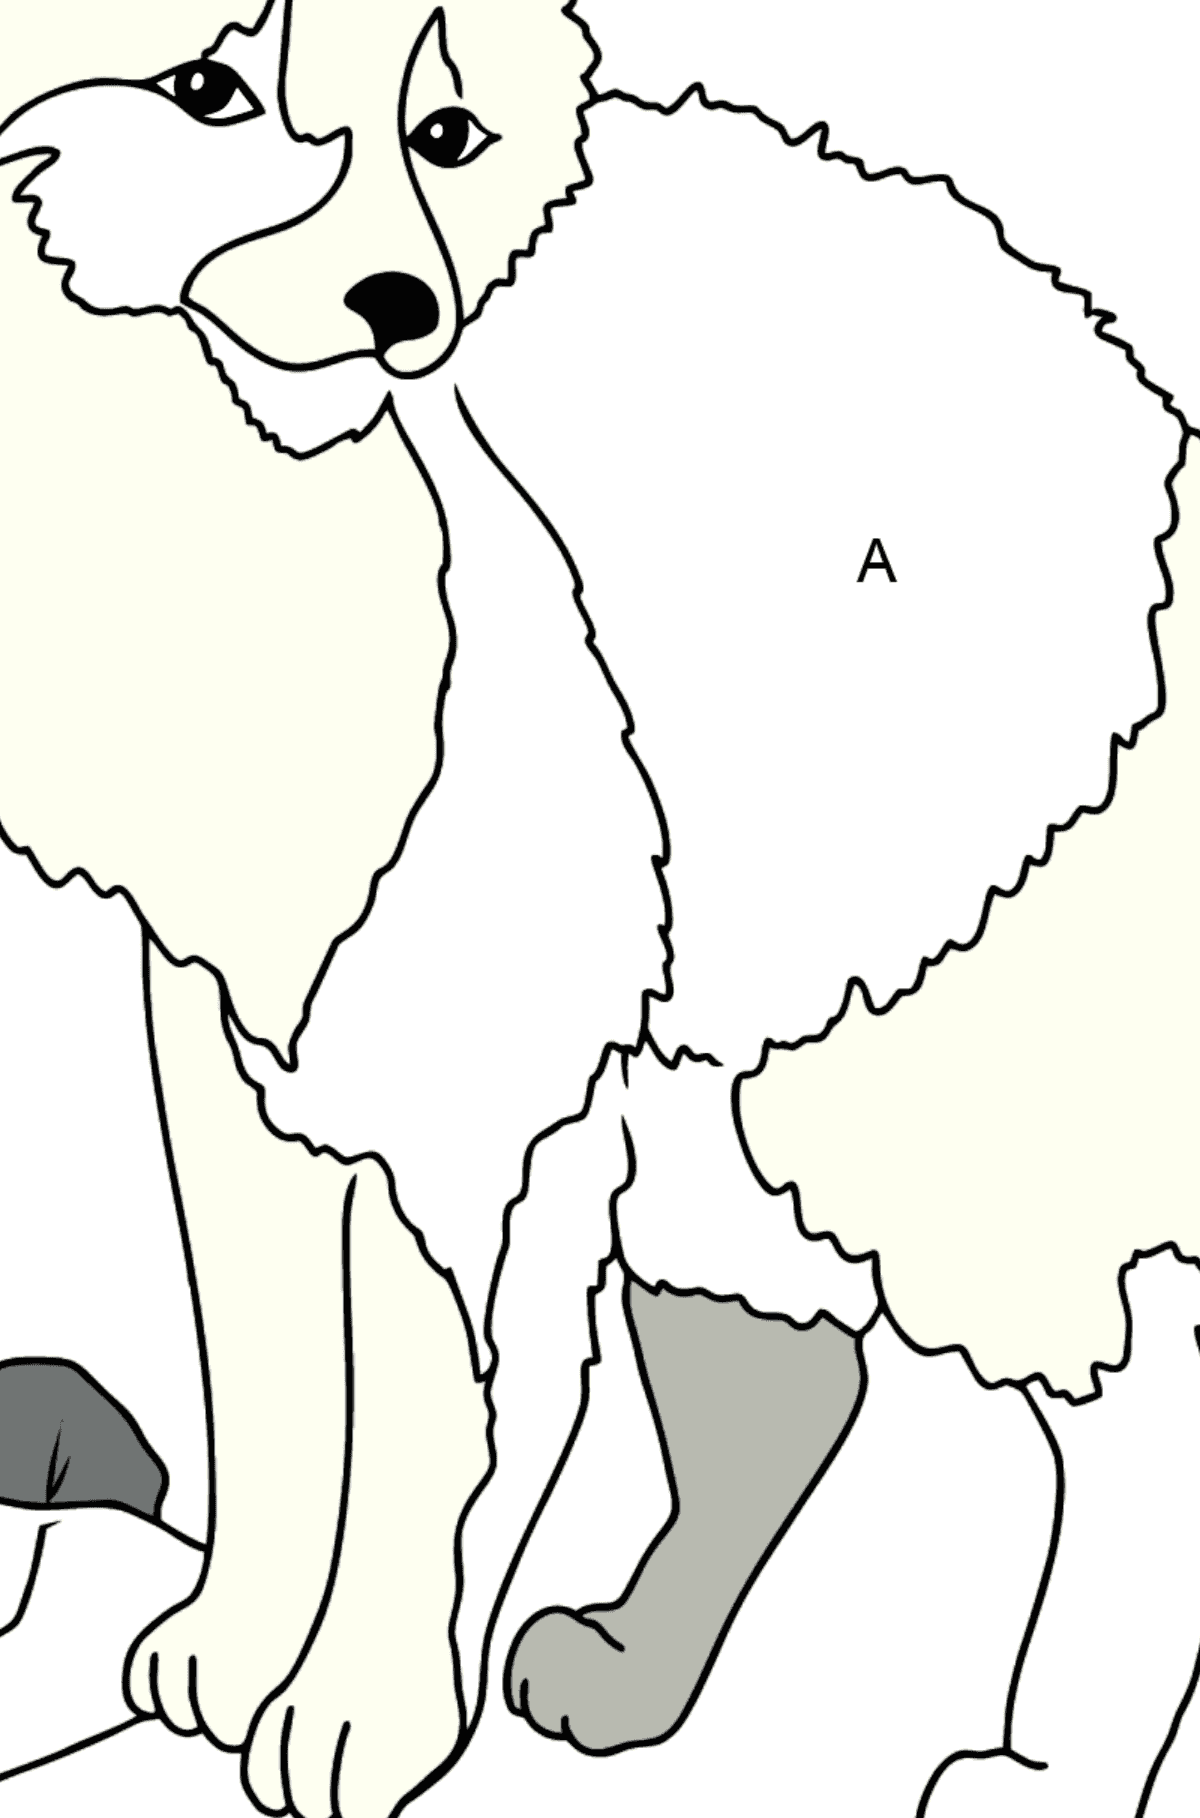 Coloring Page - A Polar Fox on a Hunt - Coloring by Letters for Kids